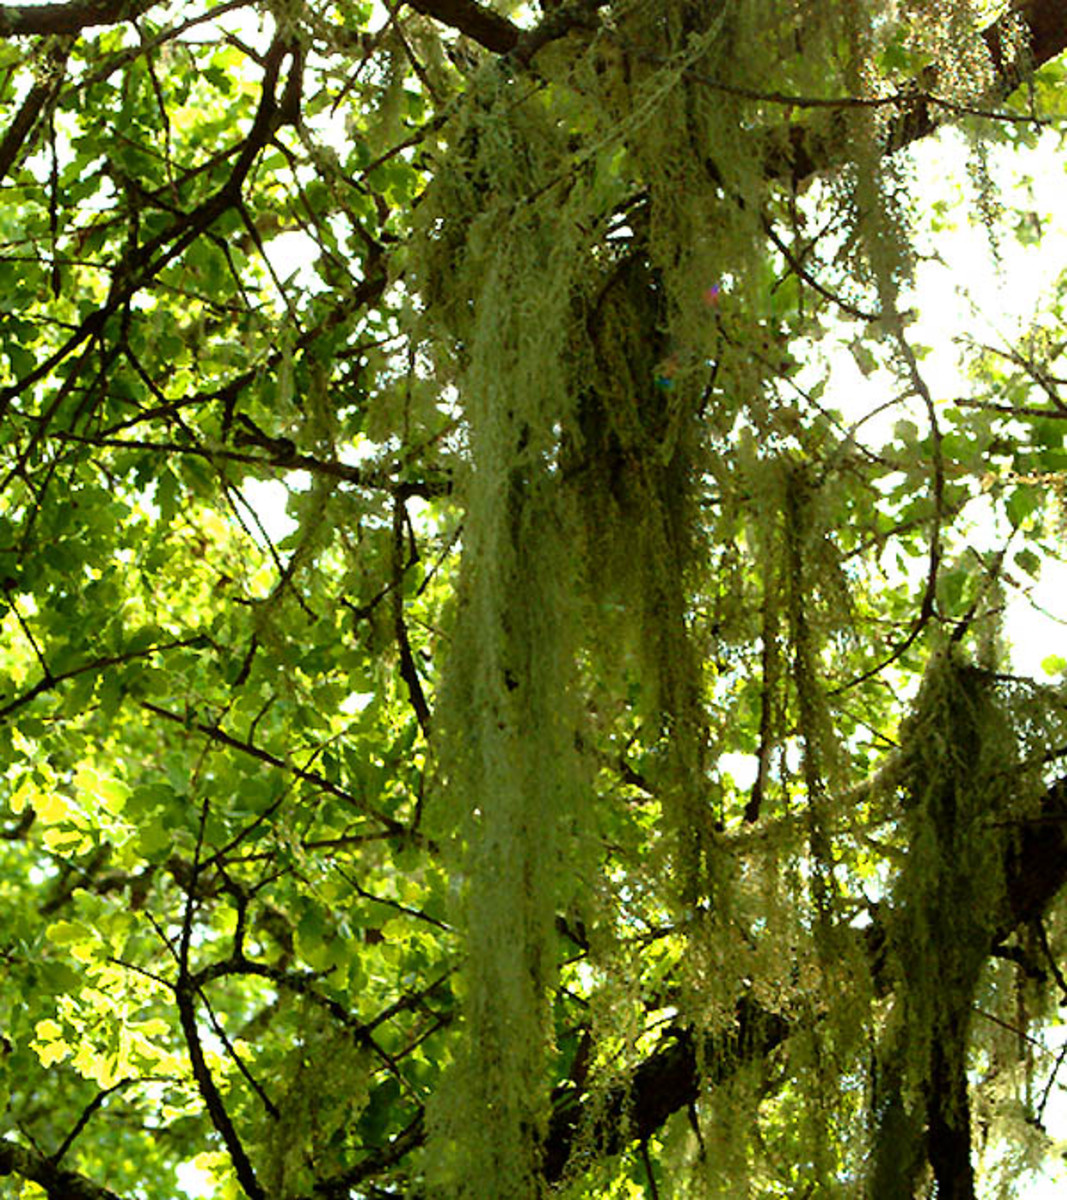 Some naturally growing mosses can add dramatic flair to hanging baskets!